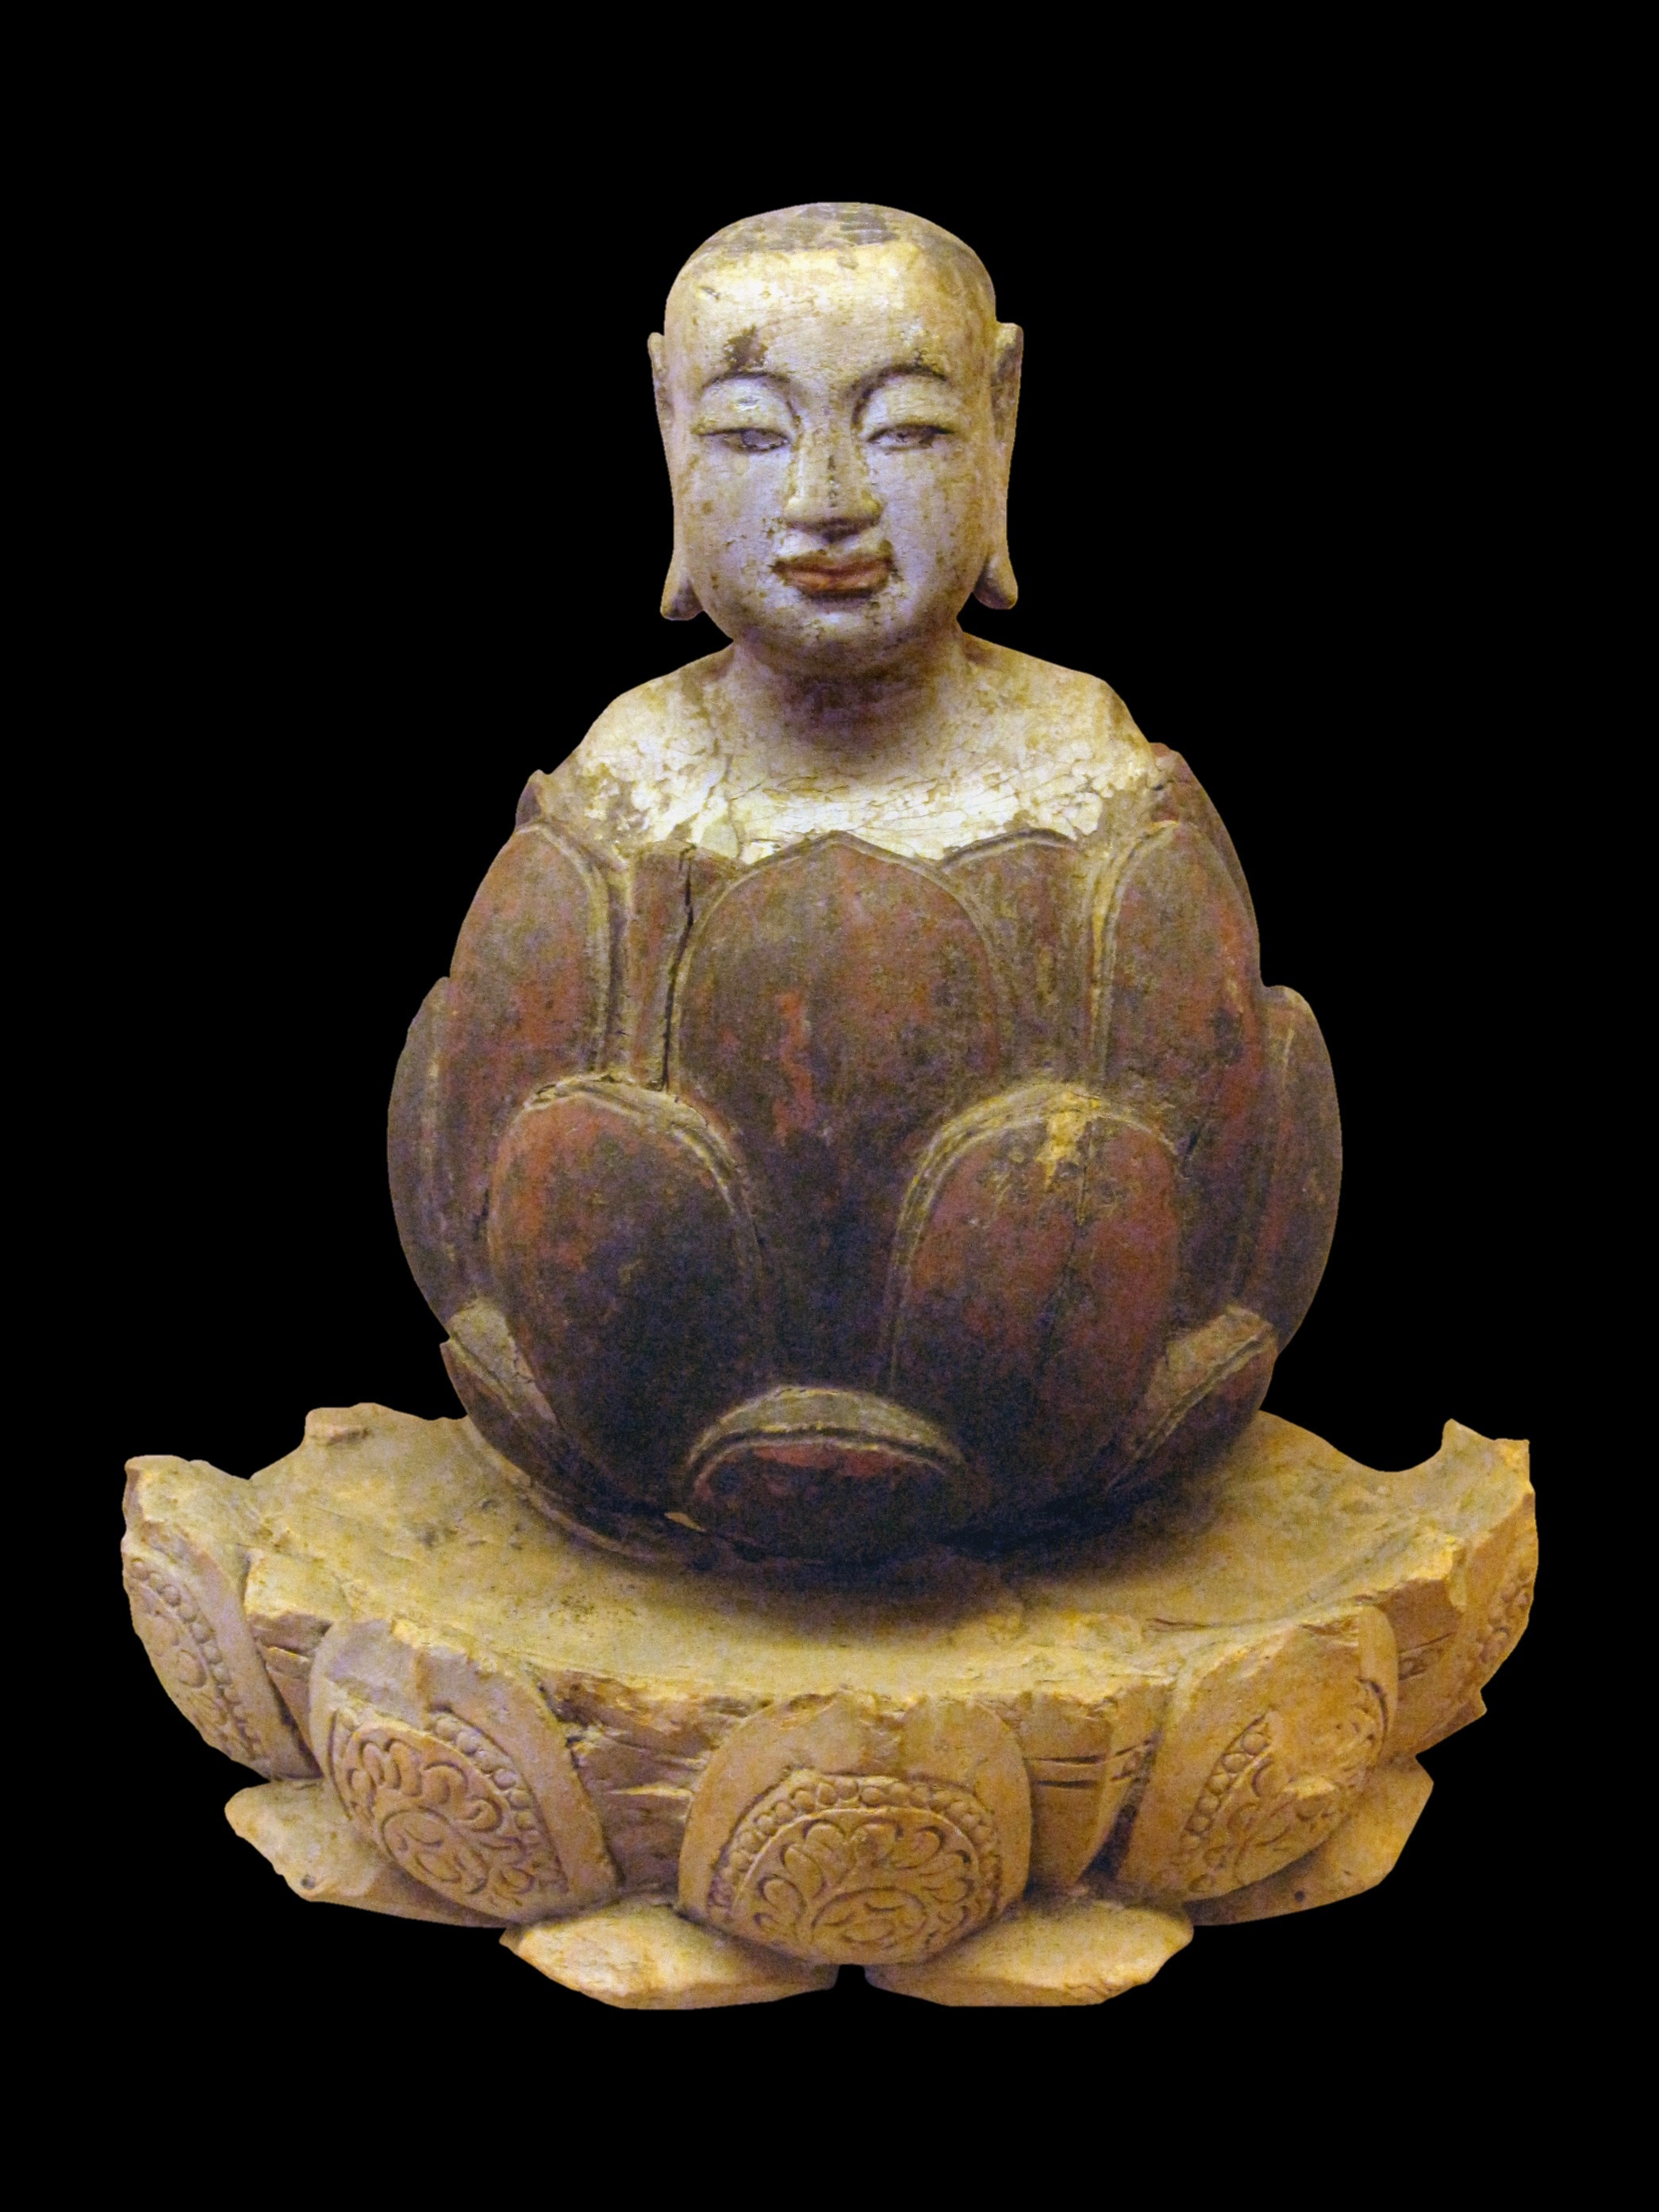 http://upload.wikimedia.org/wikipedia/commons/a/a5/National_Museum_Vietnamese_History_35_%28cropped%29.jpg